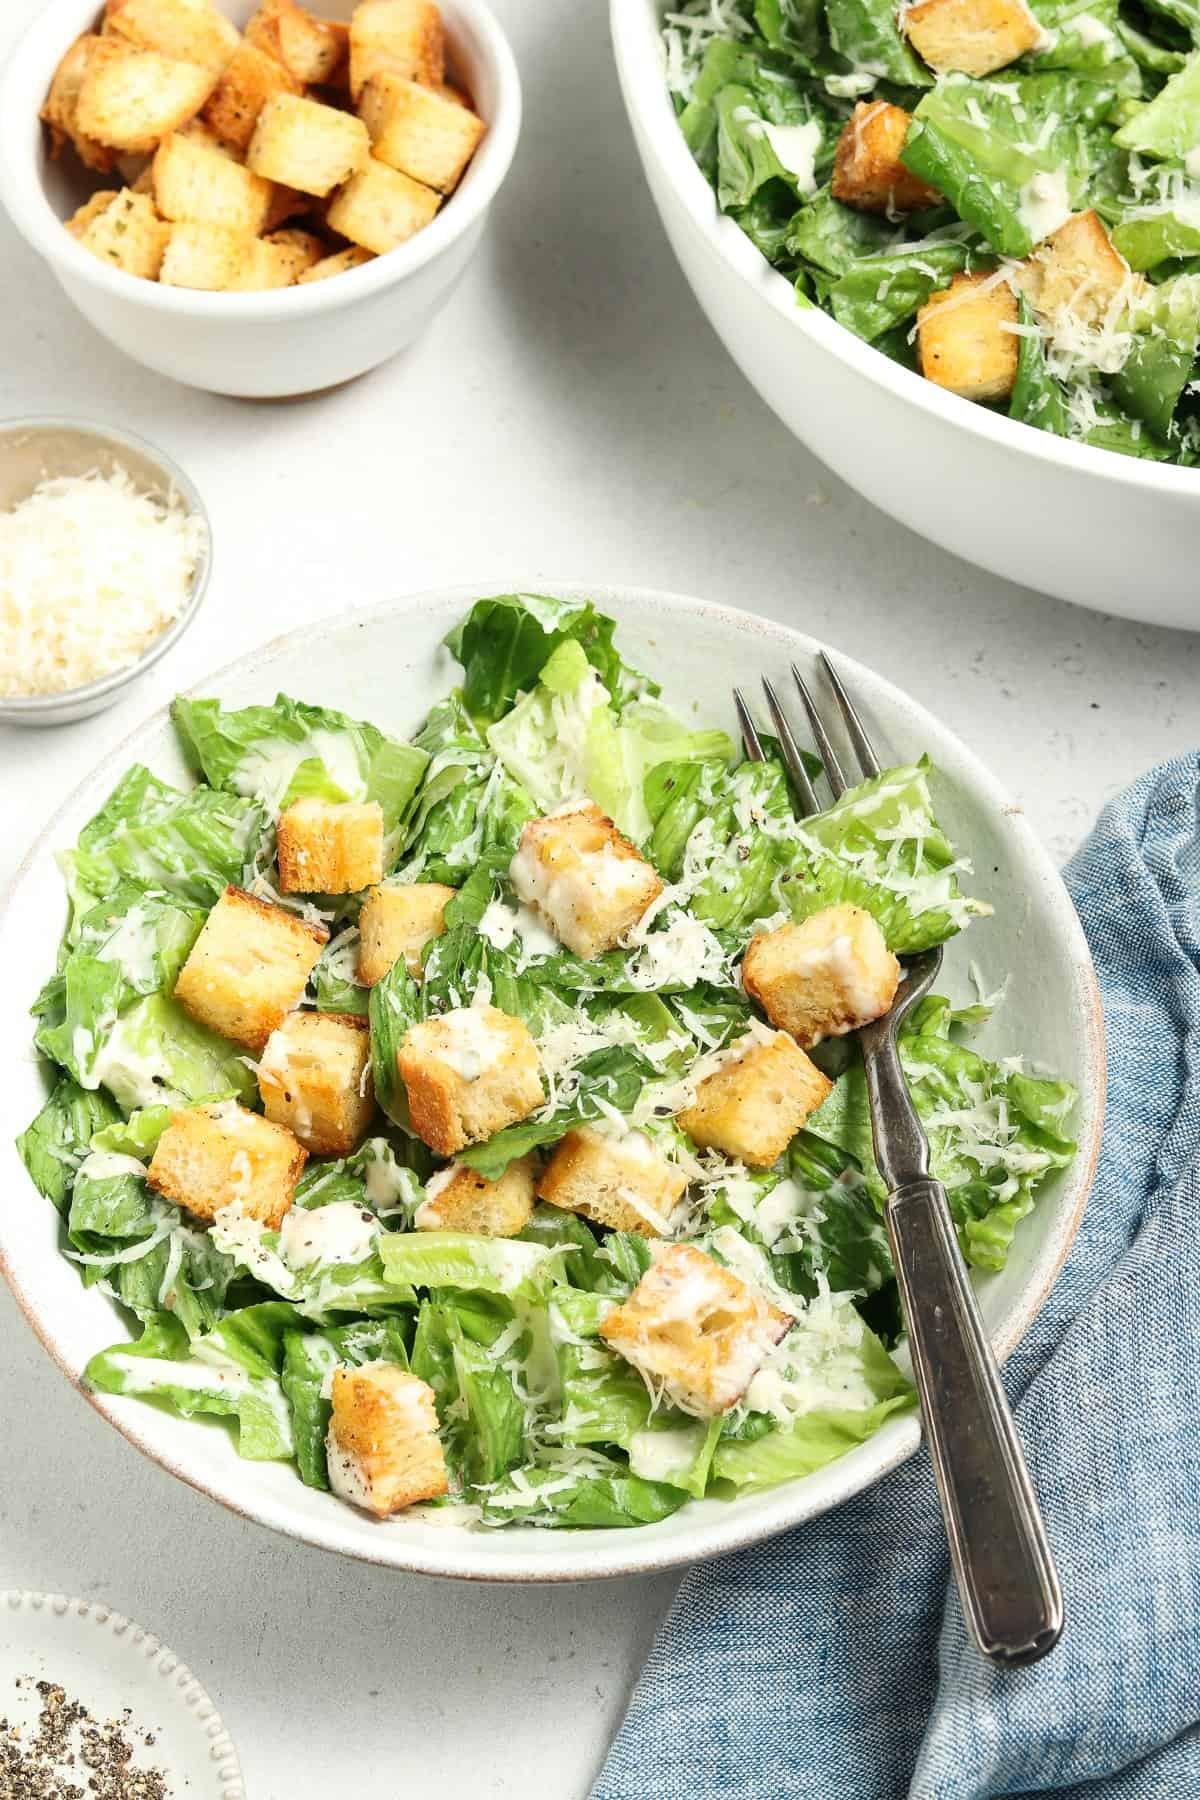 Front view of a bowl of vegan caesar salad with a fork on the side. More salad in the background.